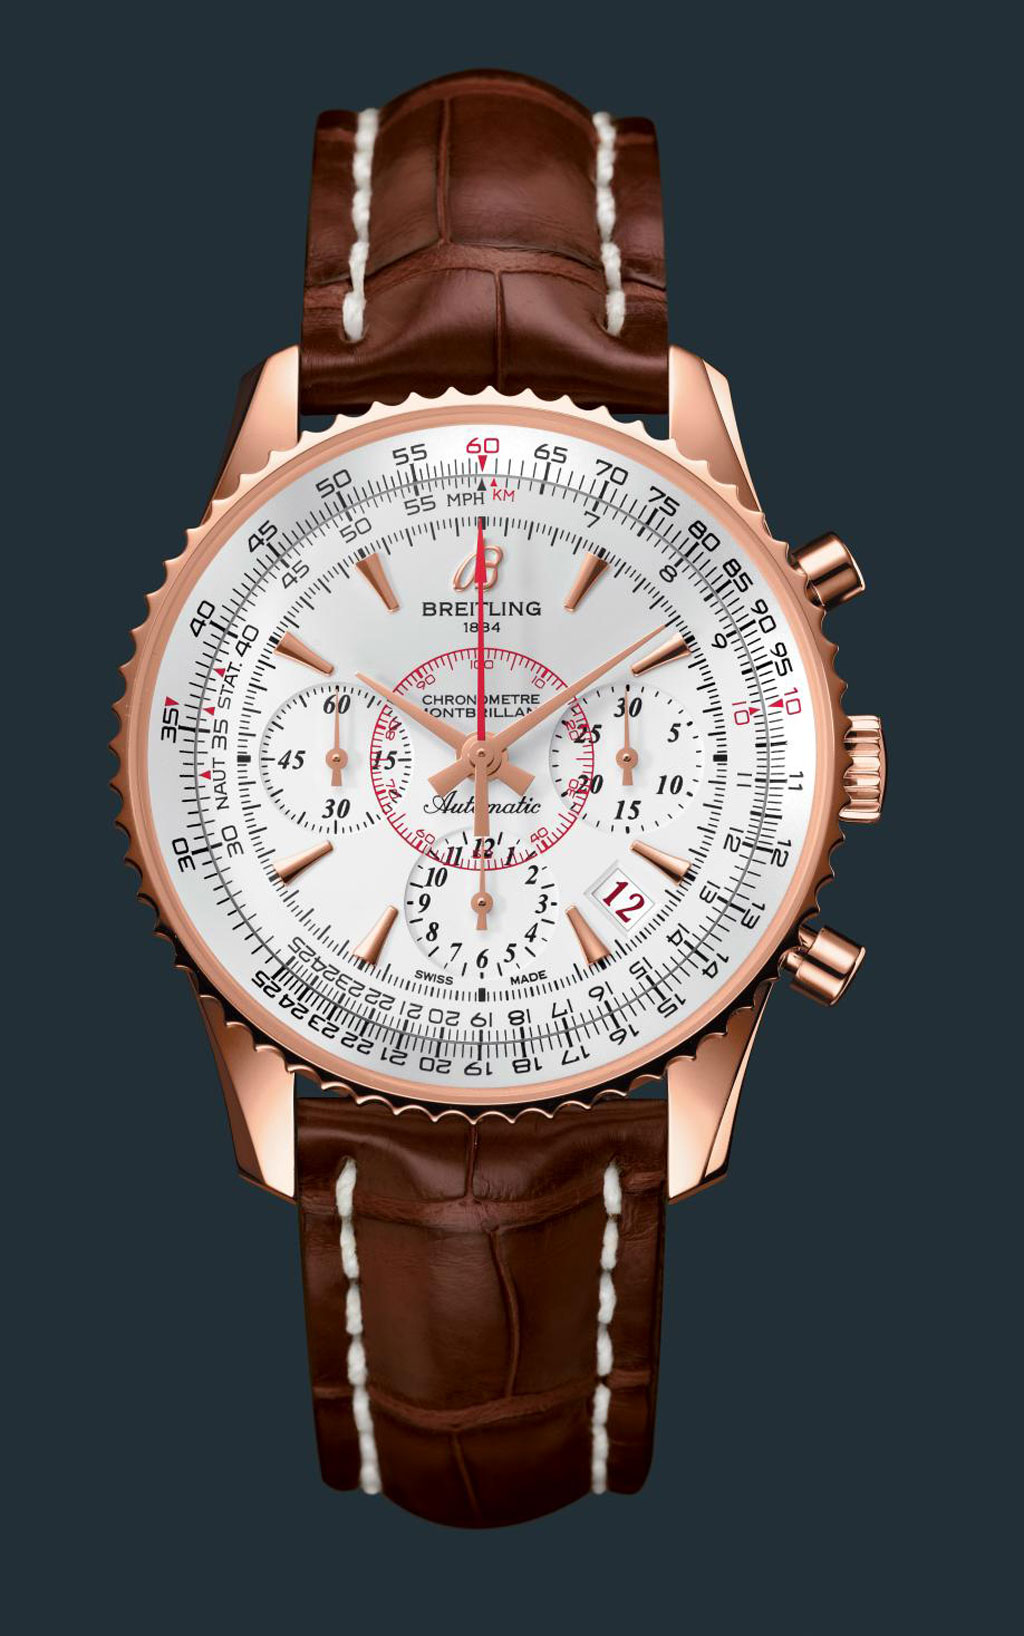 Limited Edition Birthday Collection: Limited Edition Breitling Montbrillant 01 Chronograph